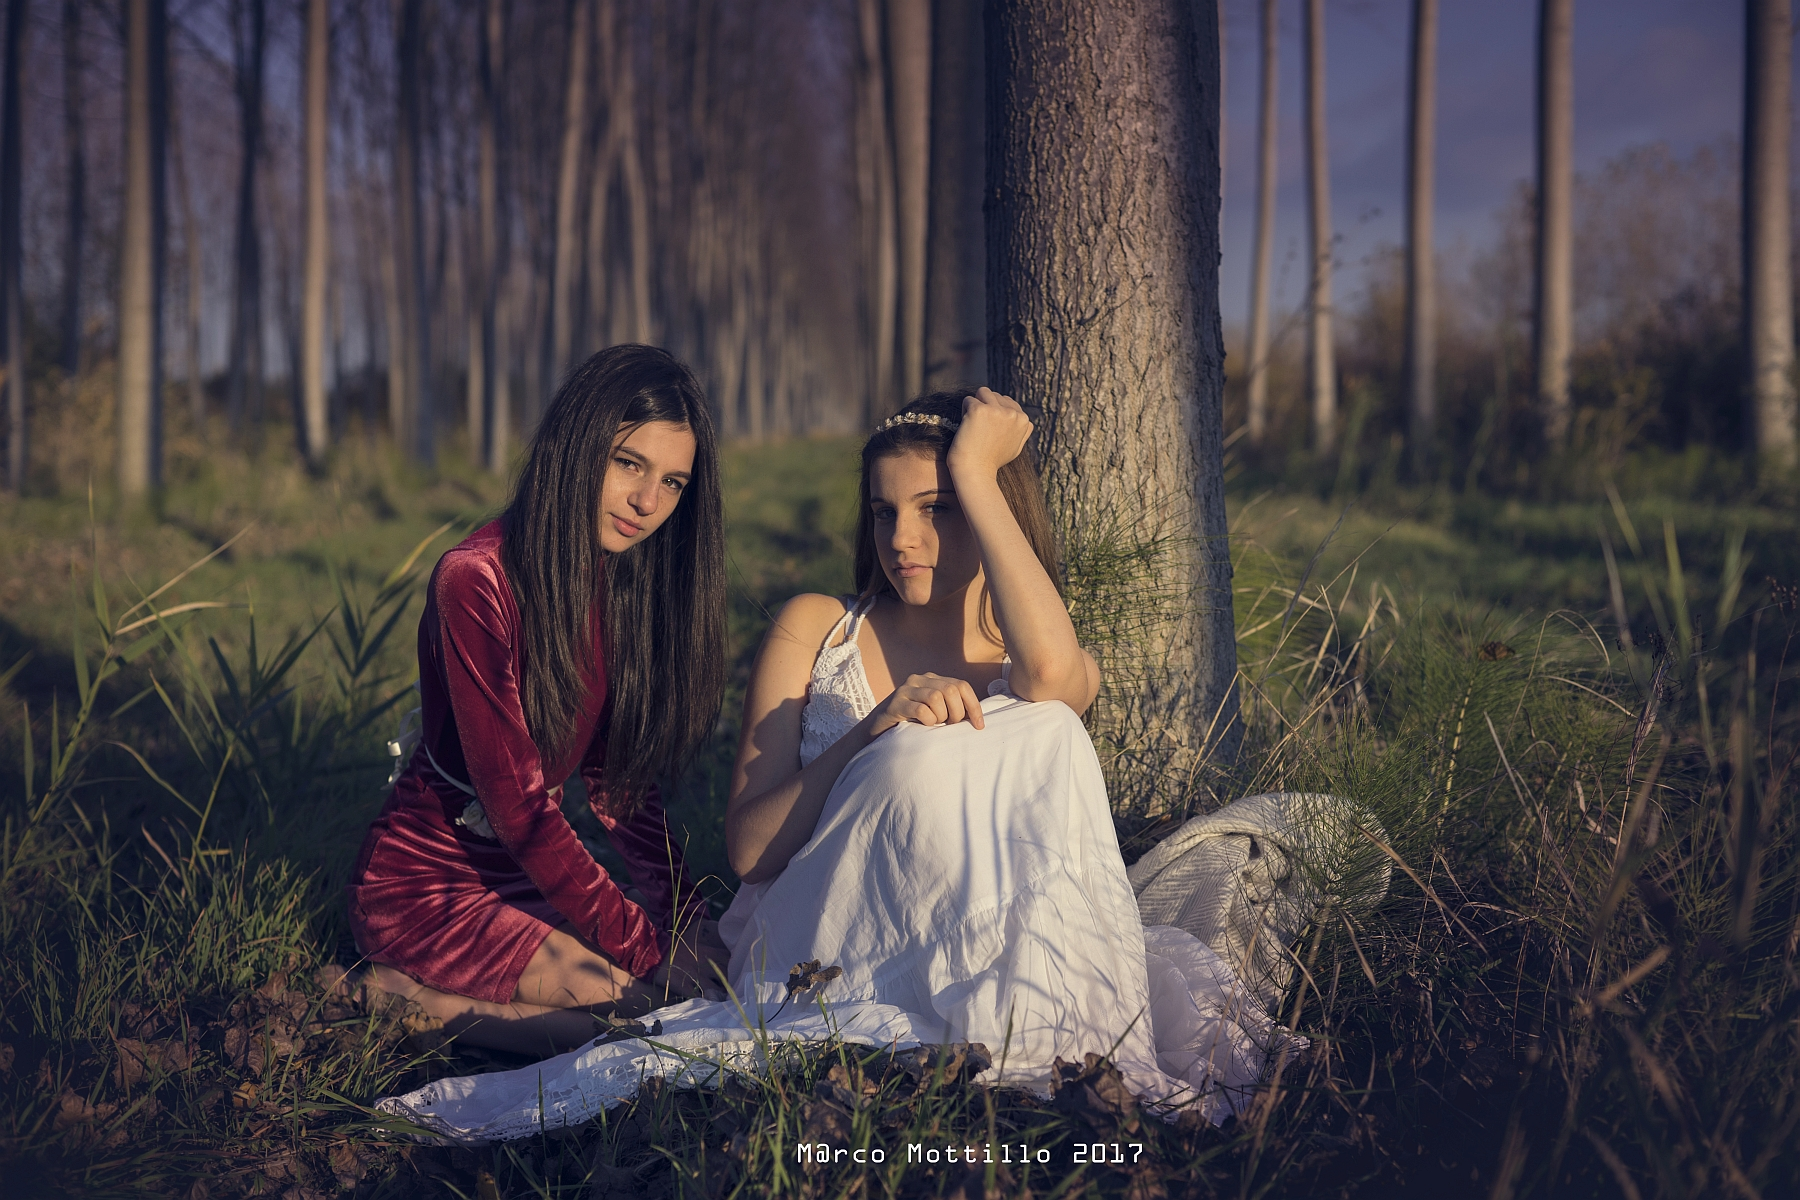 Paola and Melissa...